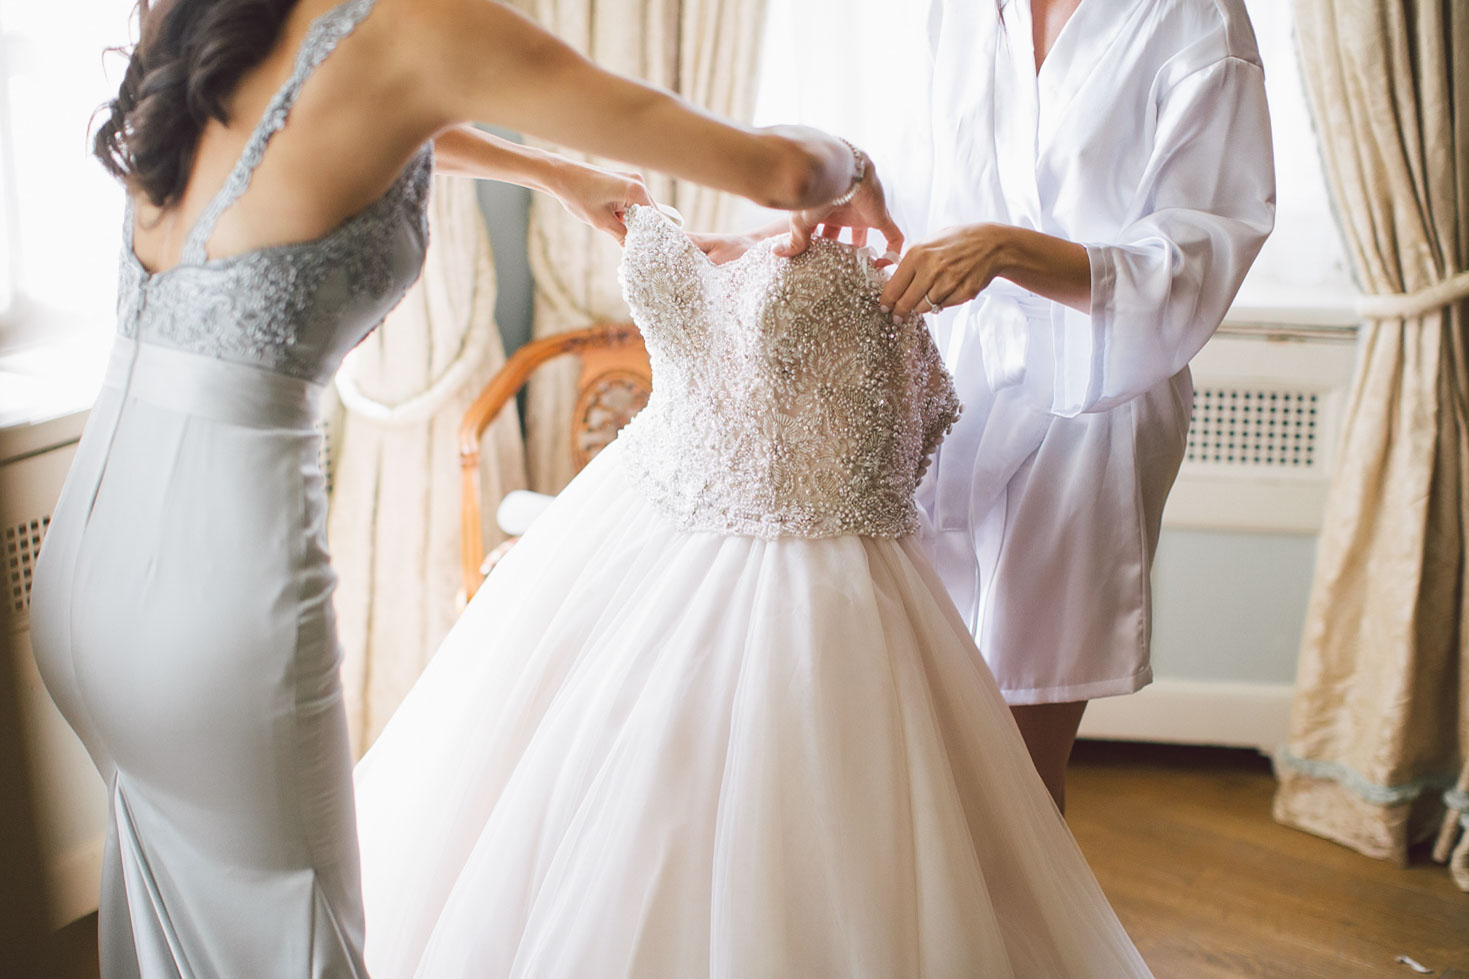 putting wedding dress on